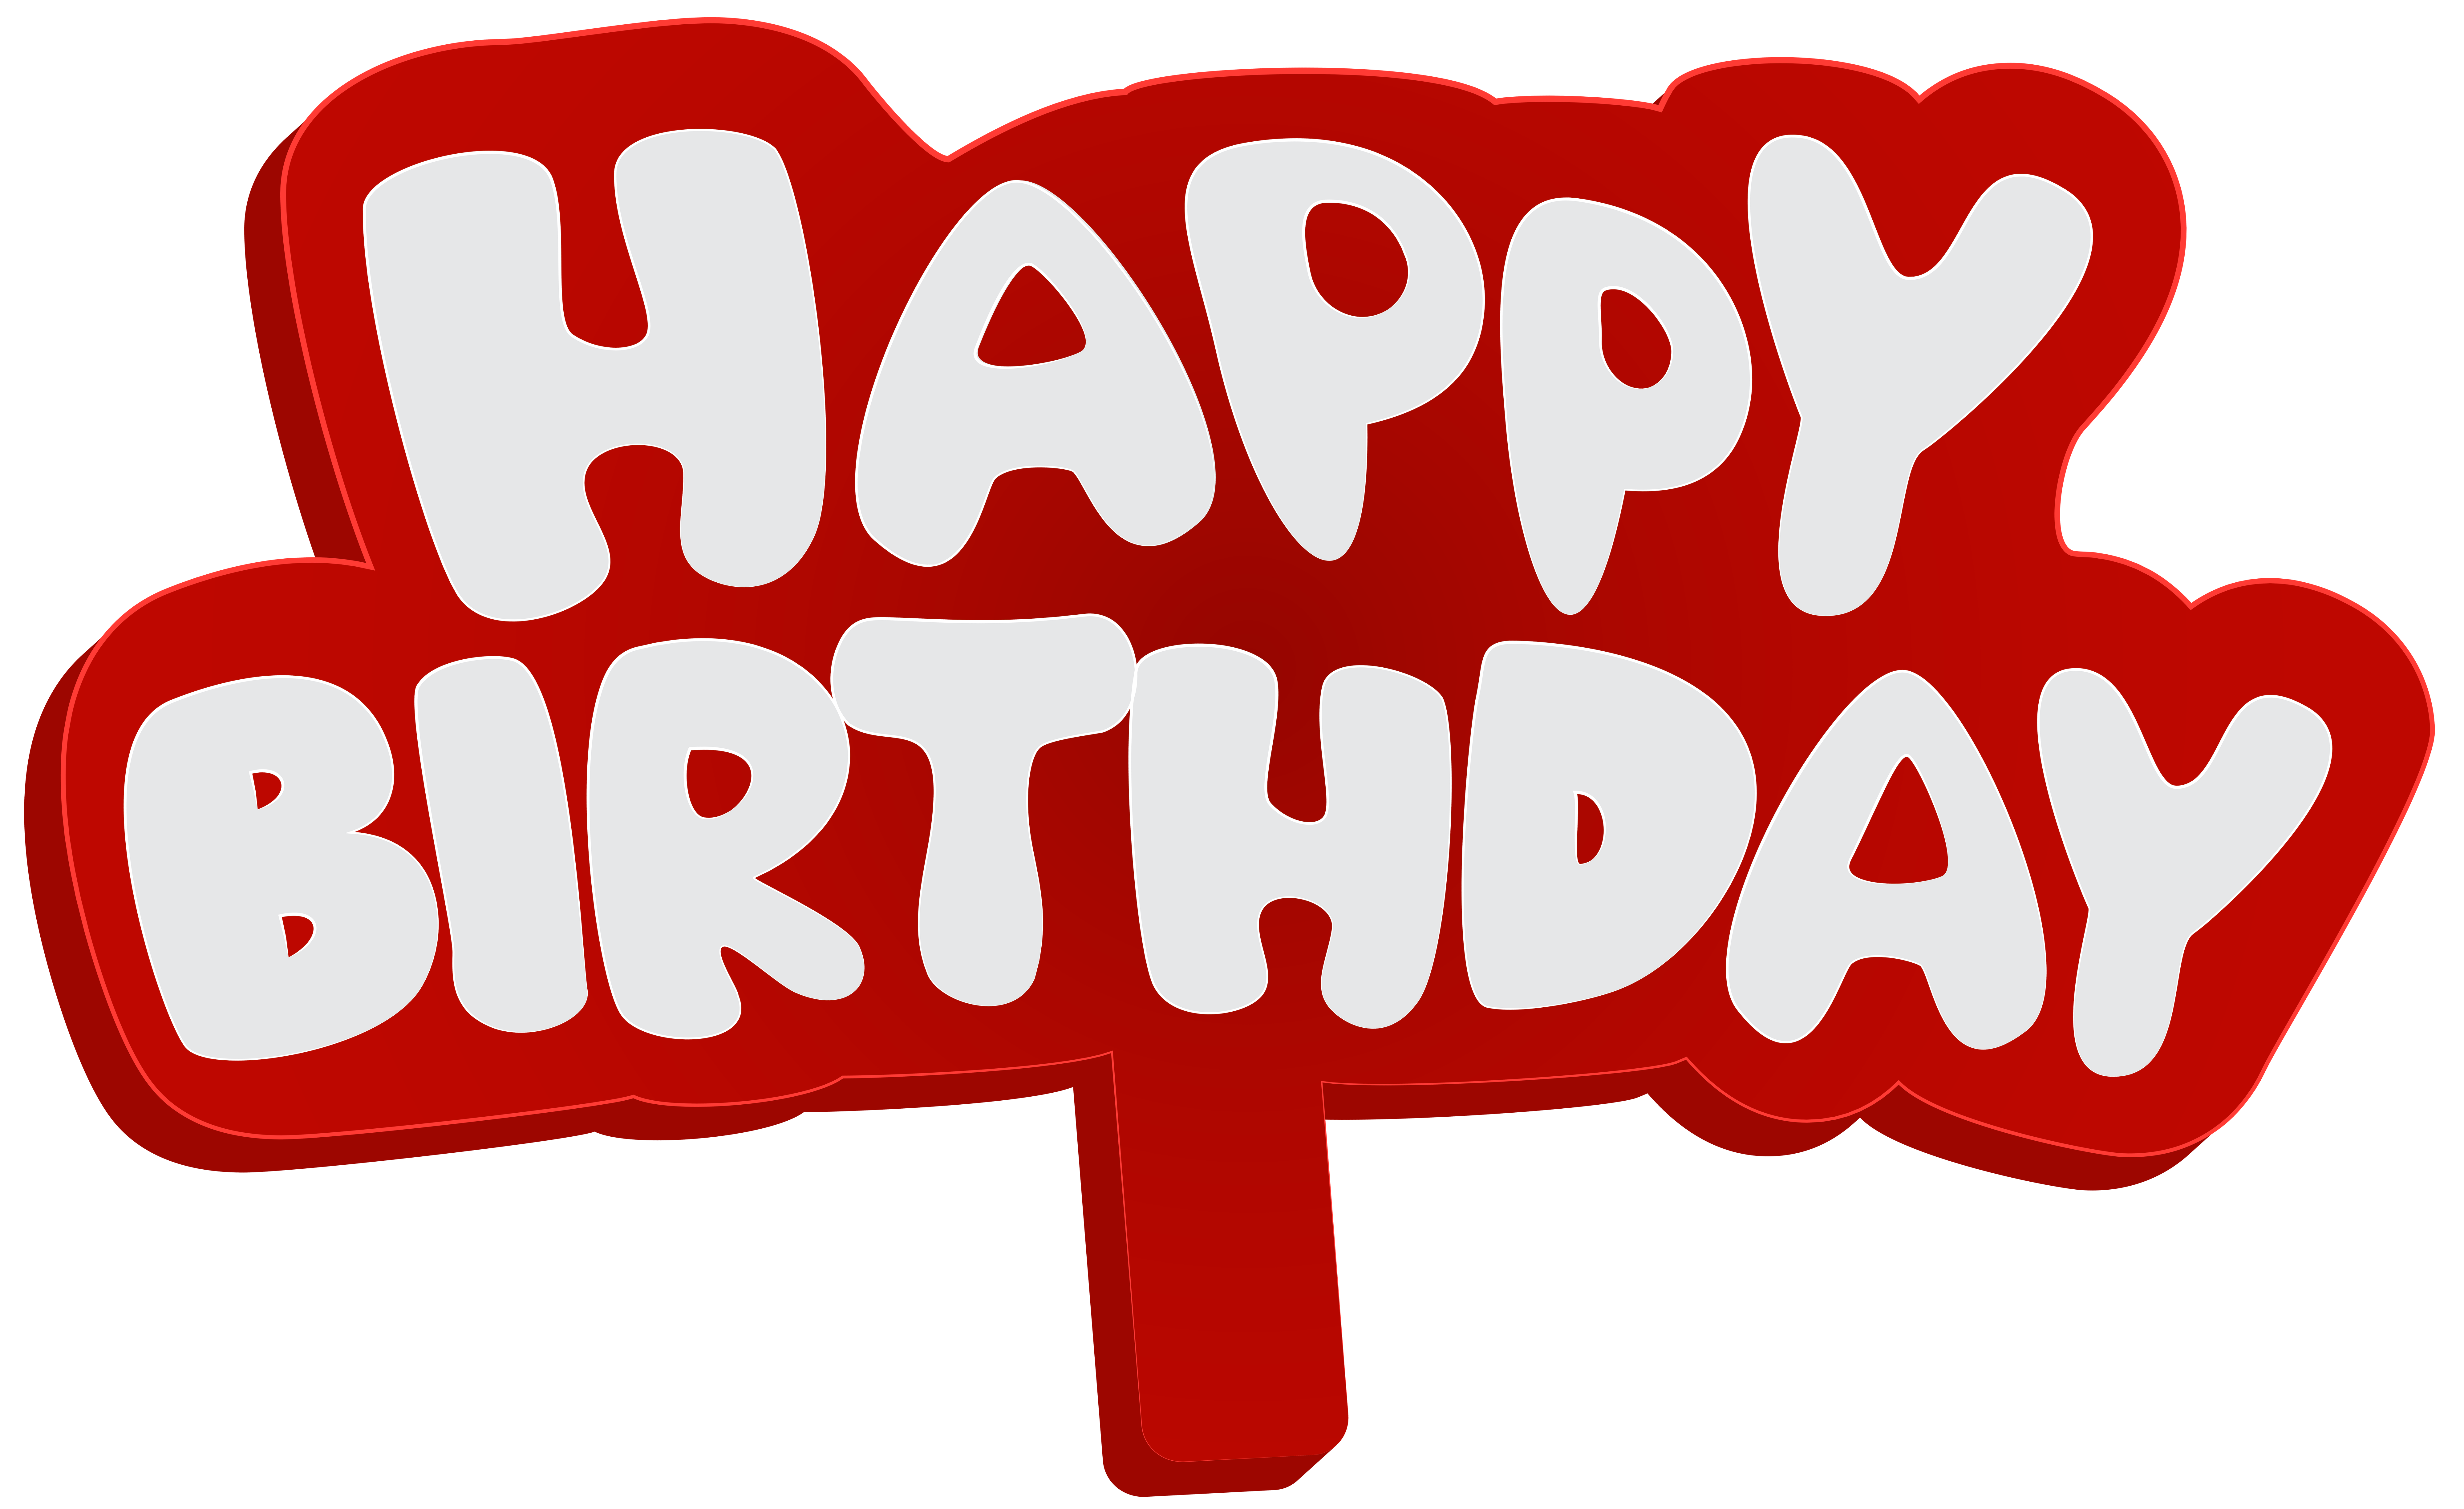 royalty free stock Happy birthday to me clipart. Png images free download